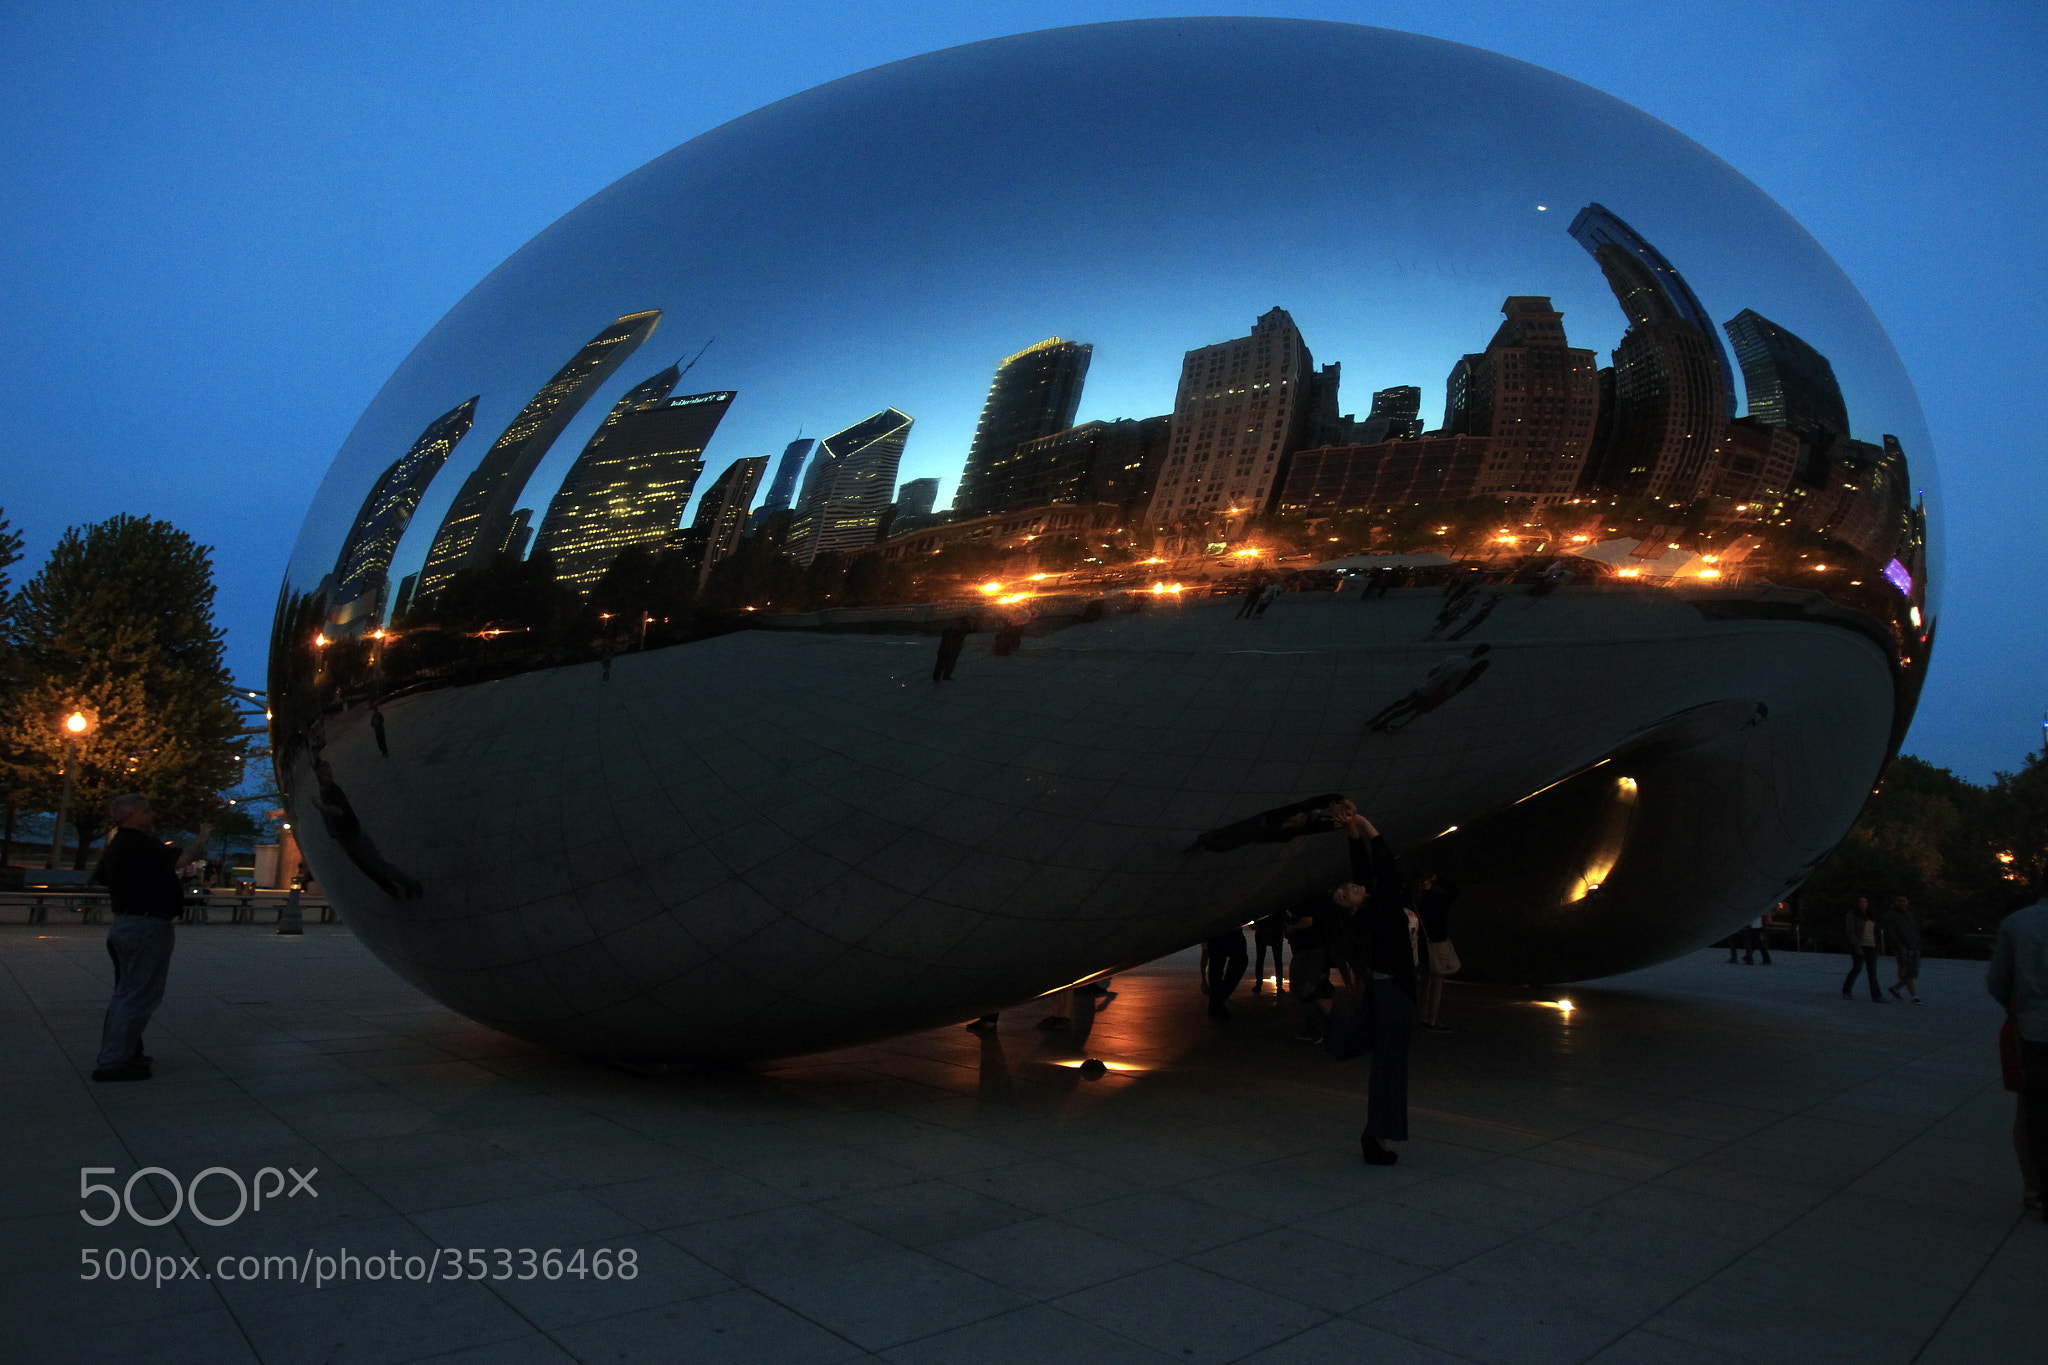 Photograph Bean at Millenium by Cristobal Garciaferro Rubio on 500px